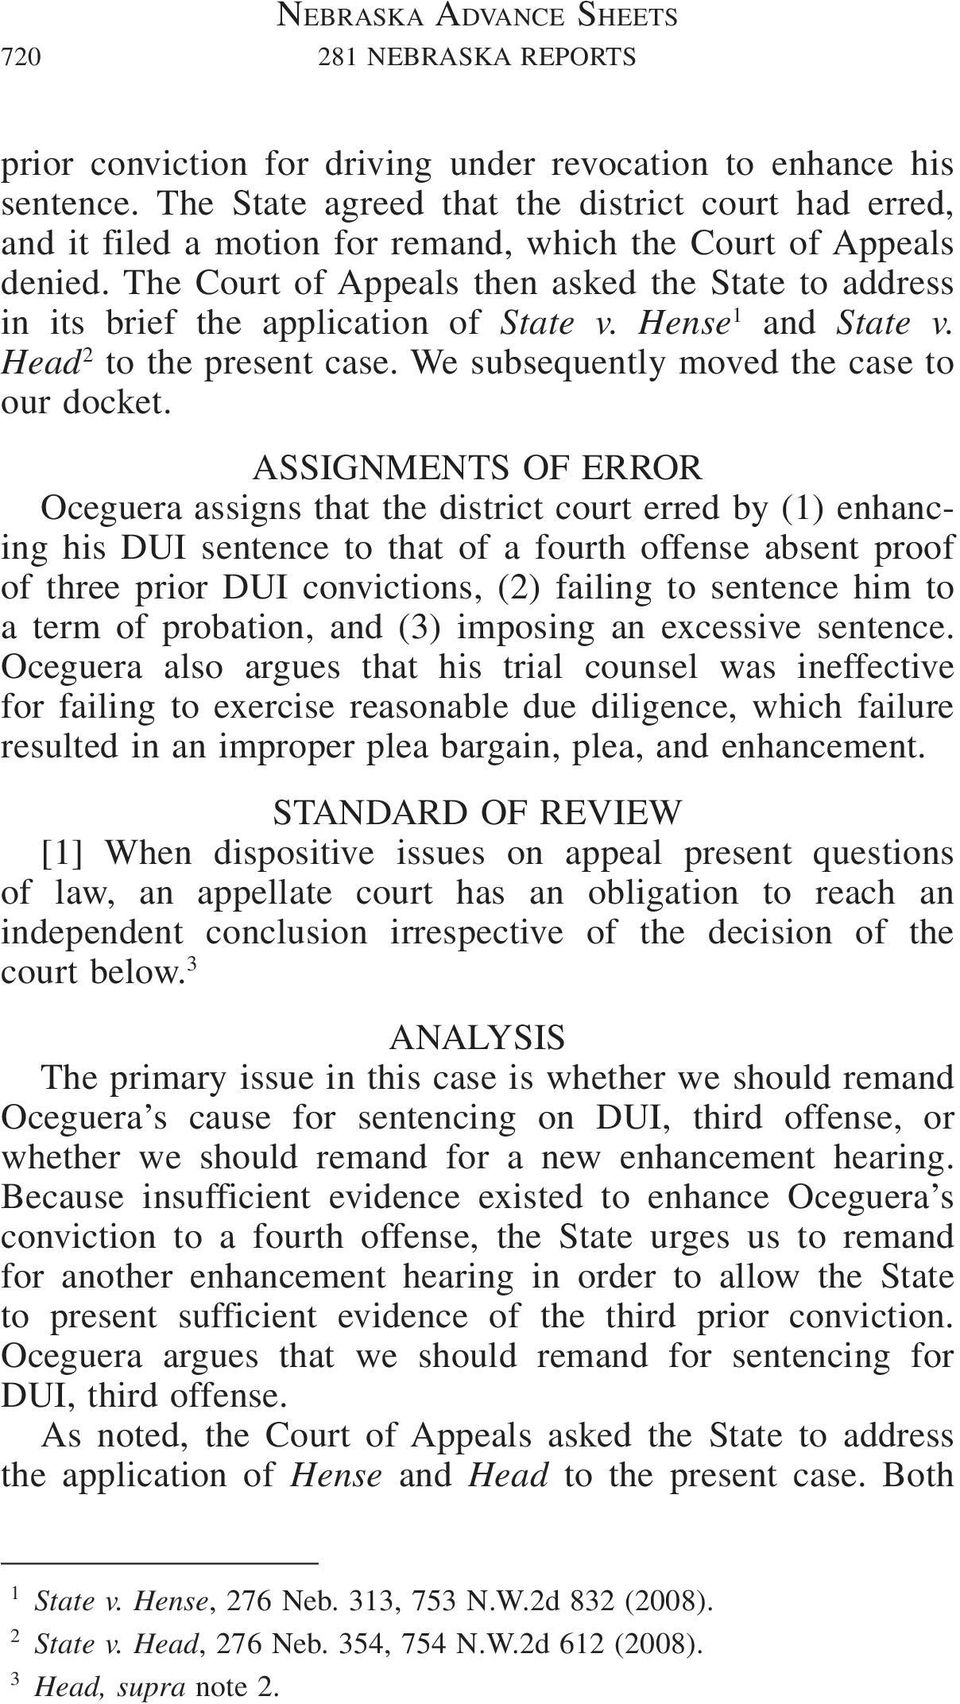 The Court of Appeals then asked the State to address in its brief the application of State v. Hense 1 and State v. Head 2 to the present case. We subsequently moved the case to our docket.